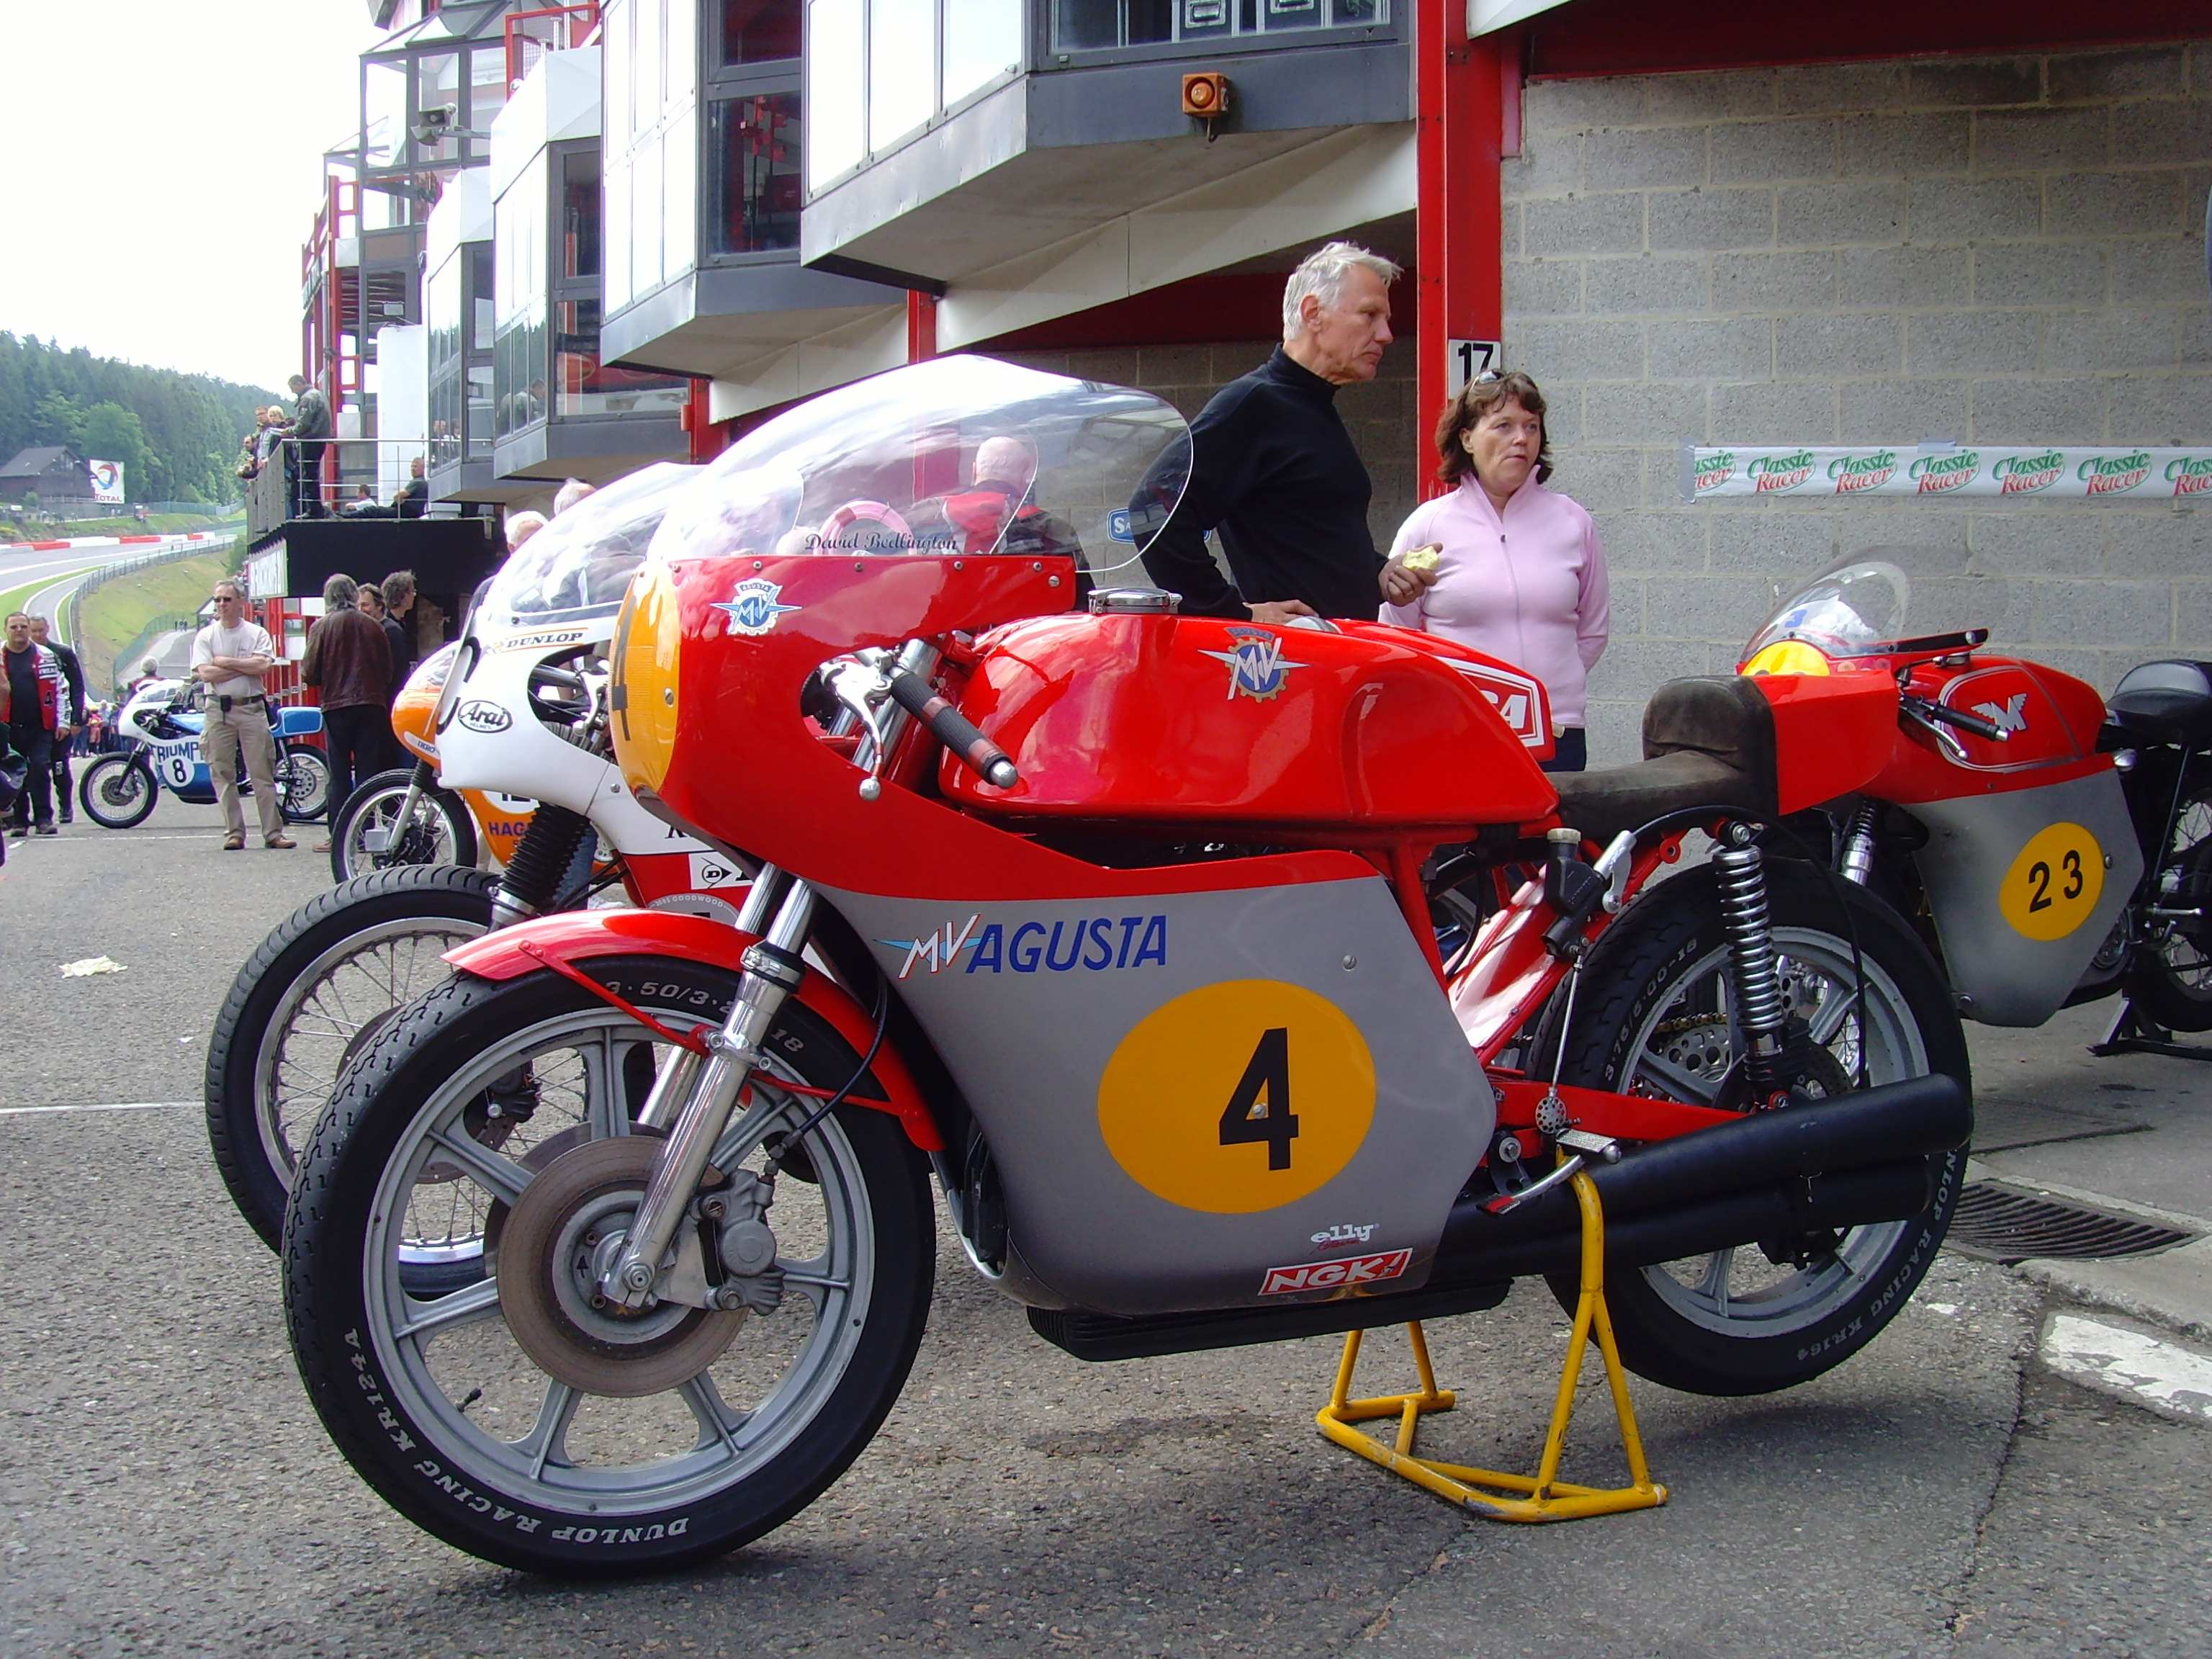 Mv agusta prix photo - 4